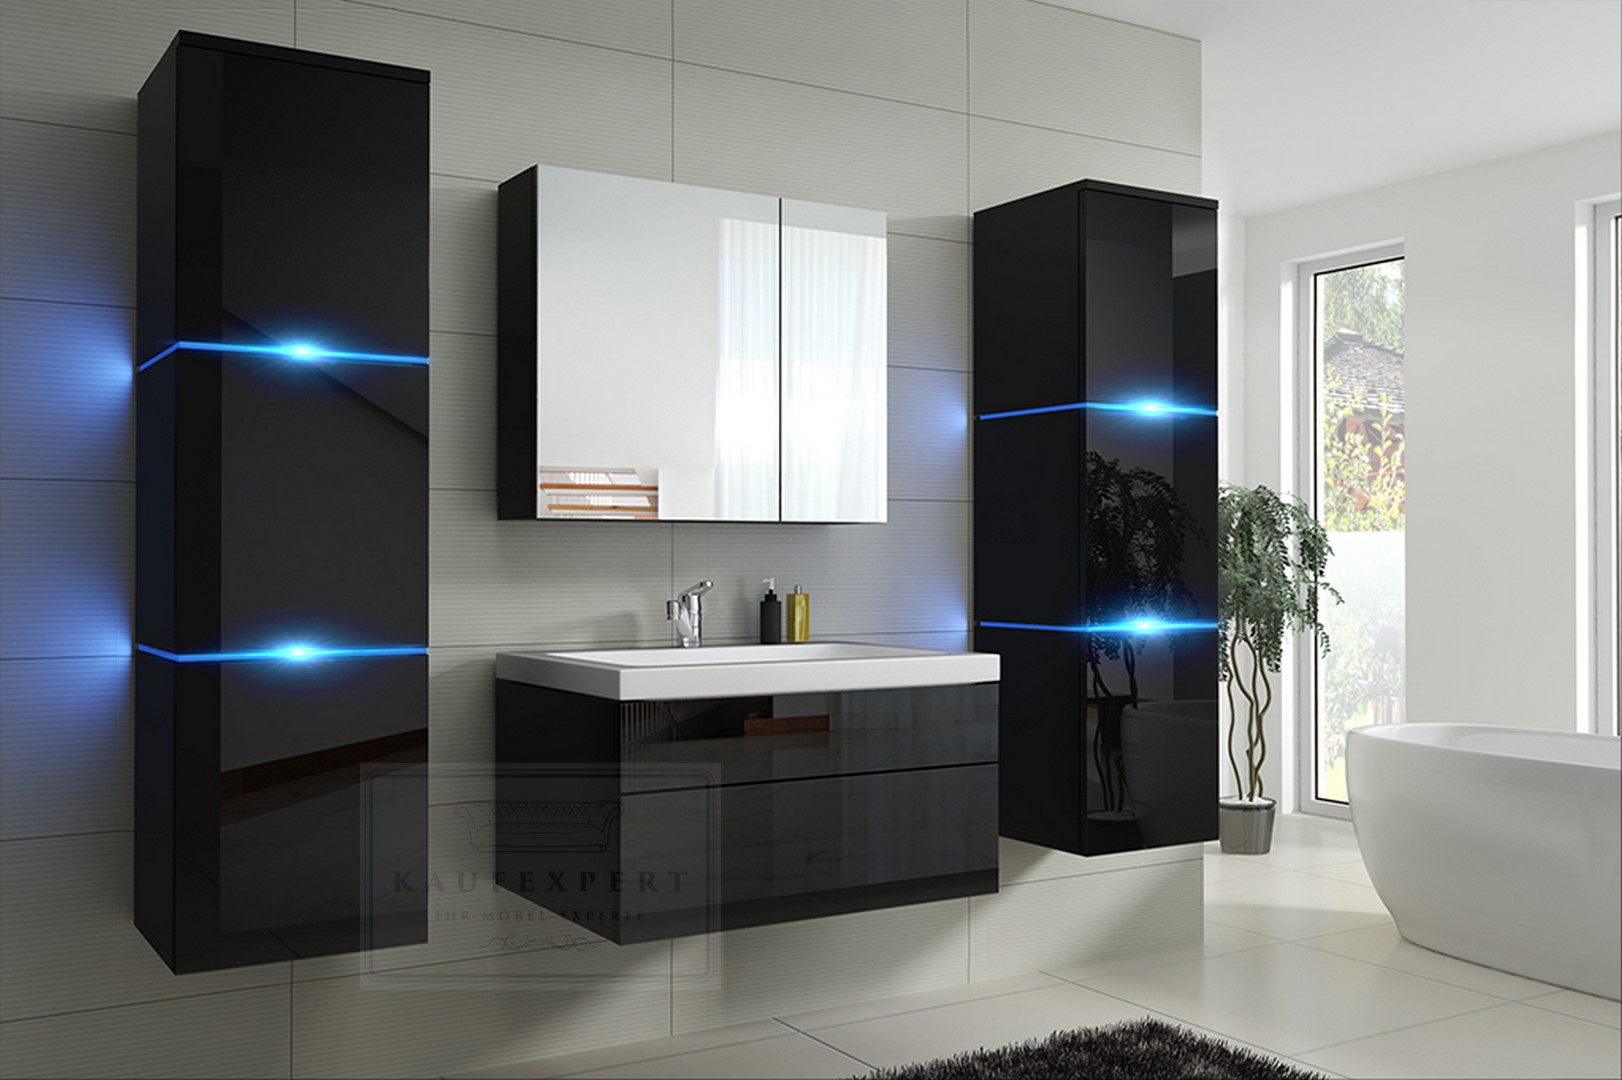 badm bel lux new badezimmerm bel keramik hochglanz holzoptik led beleuchtung ovp ebay. Black Bedroom Furniture Sets. Home Design Ideas